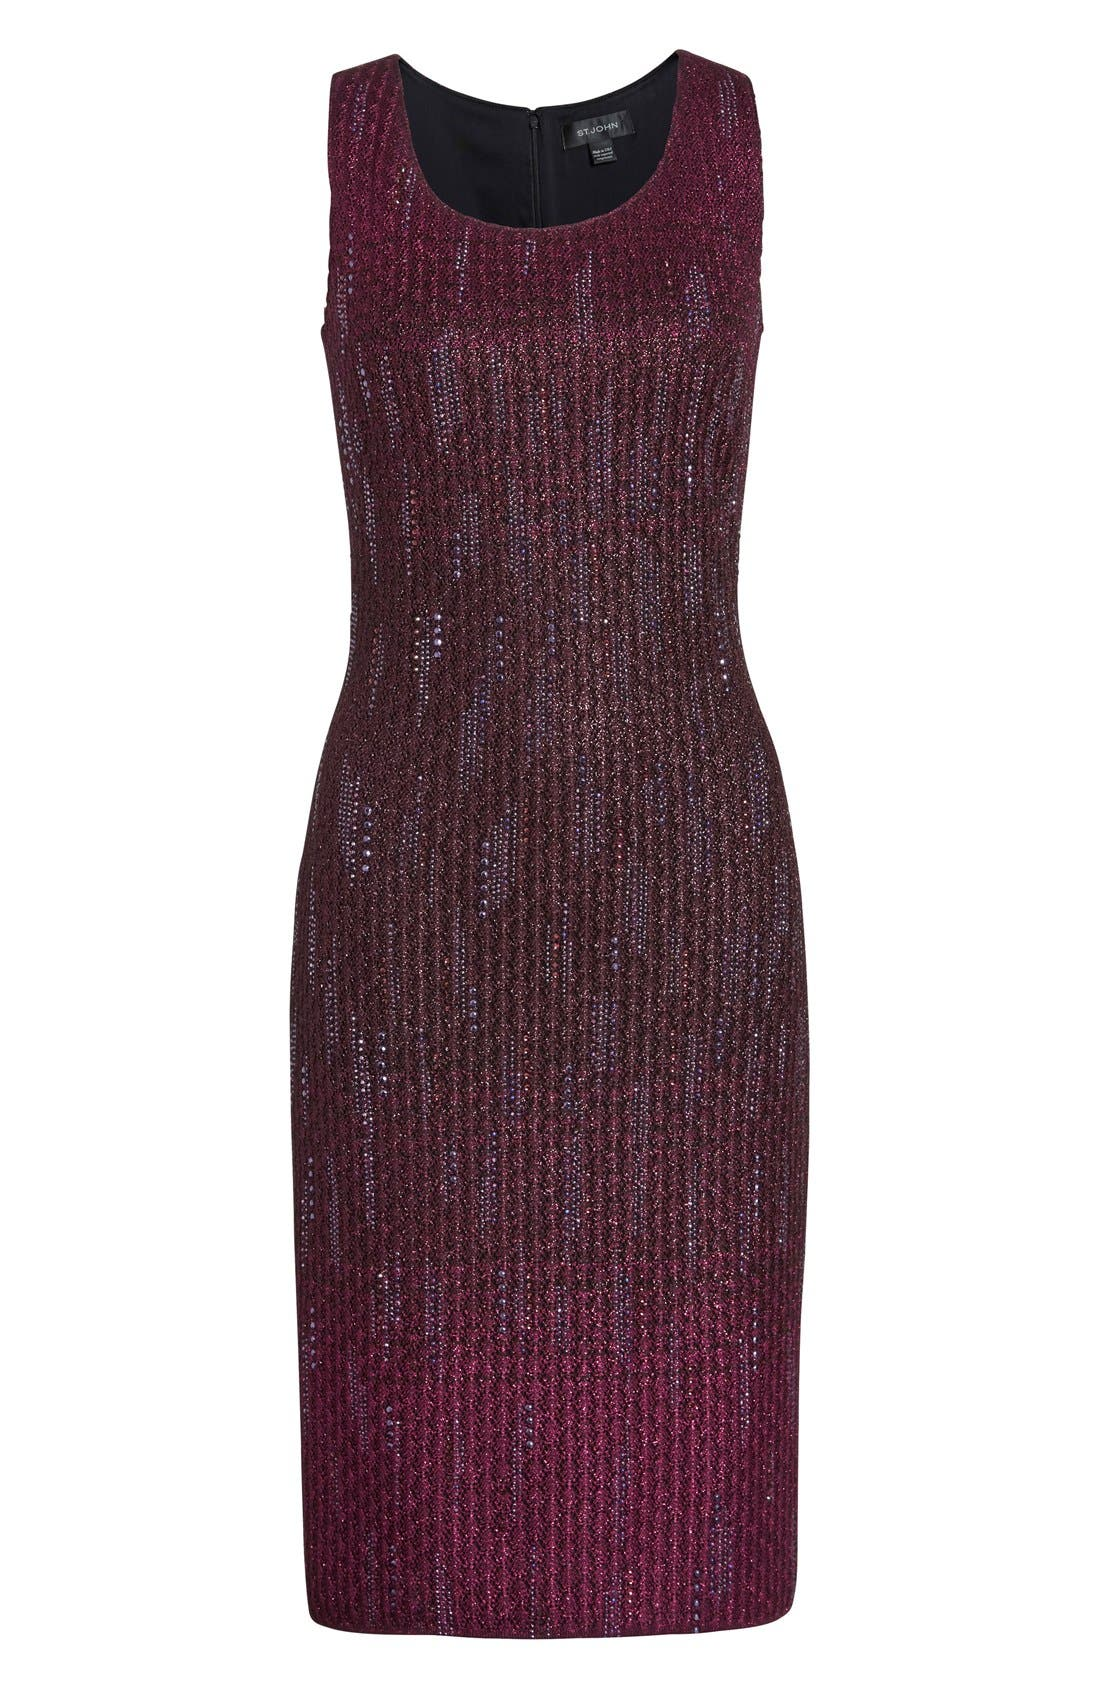 Alternate Image 4  - St. John Collection 'Kira' Crystal Embellished Ombré Knit Sheath Dress